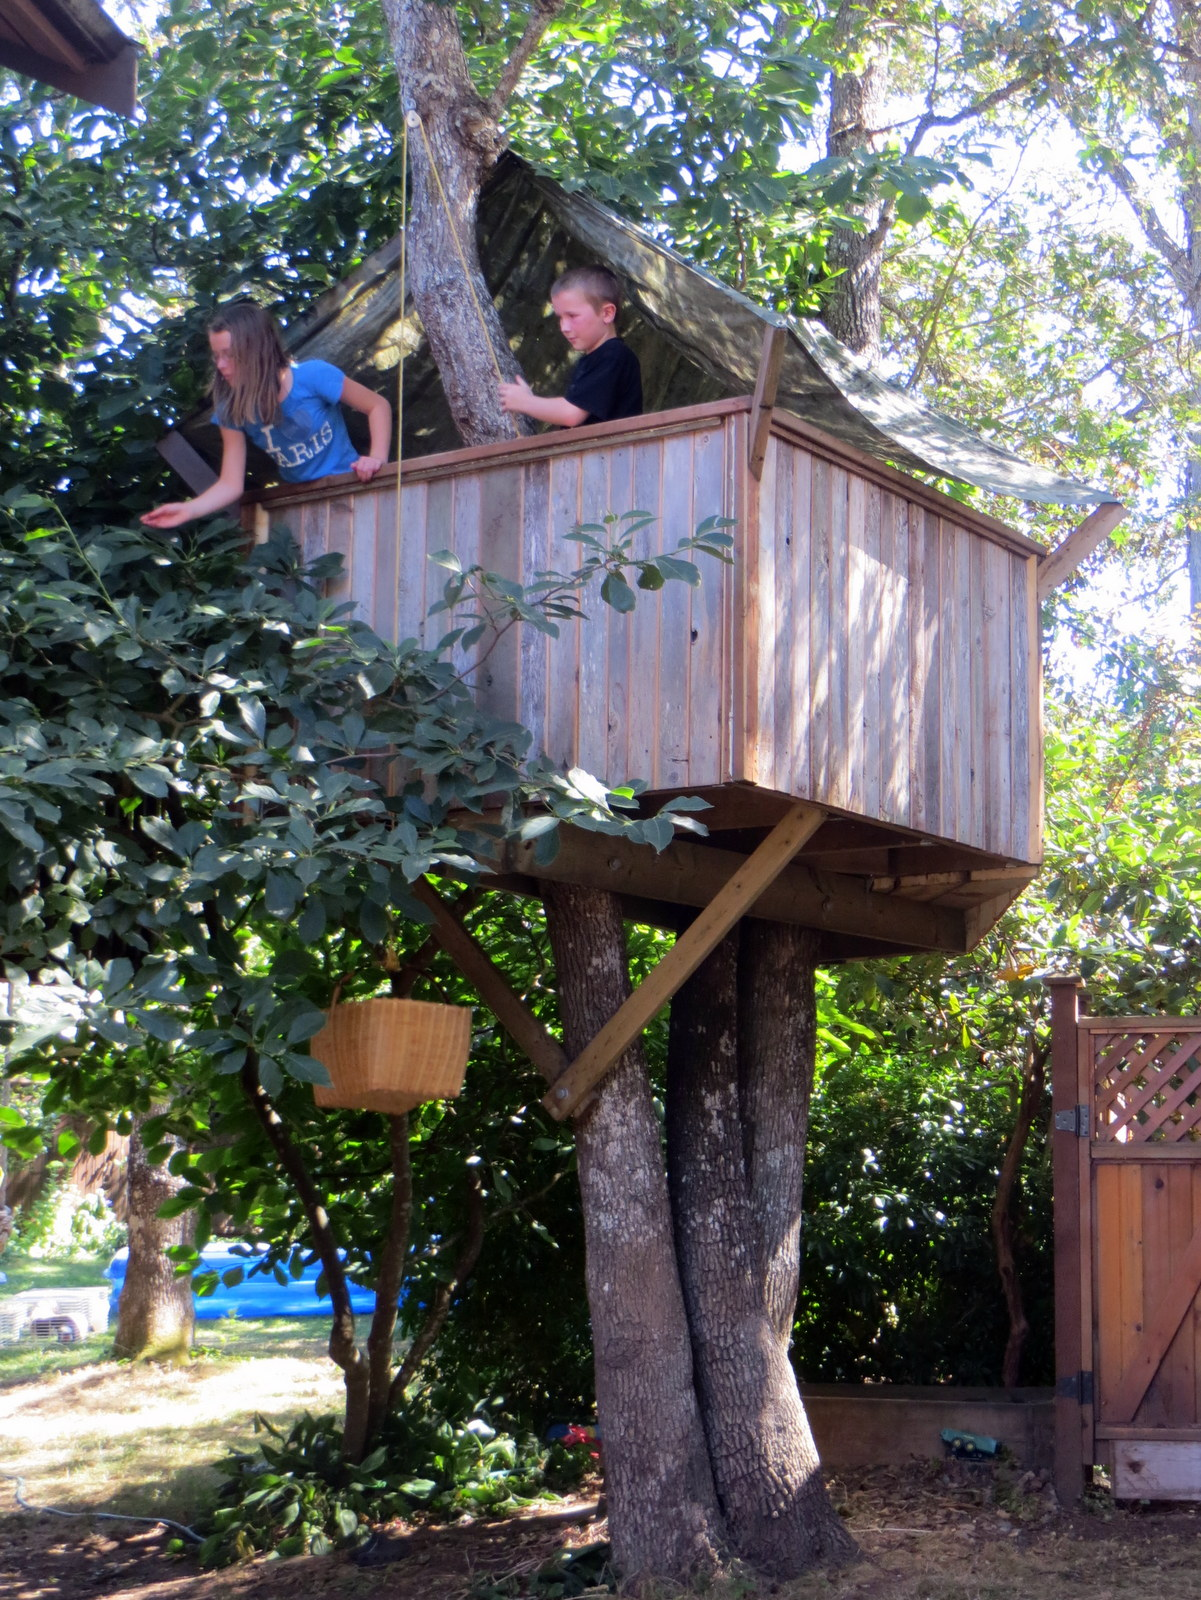 How To Build A Treehouse 17 Steps With Pictures Instructables